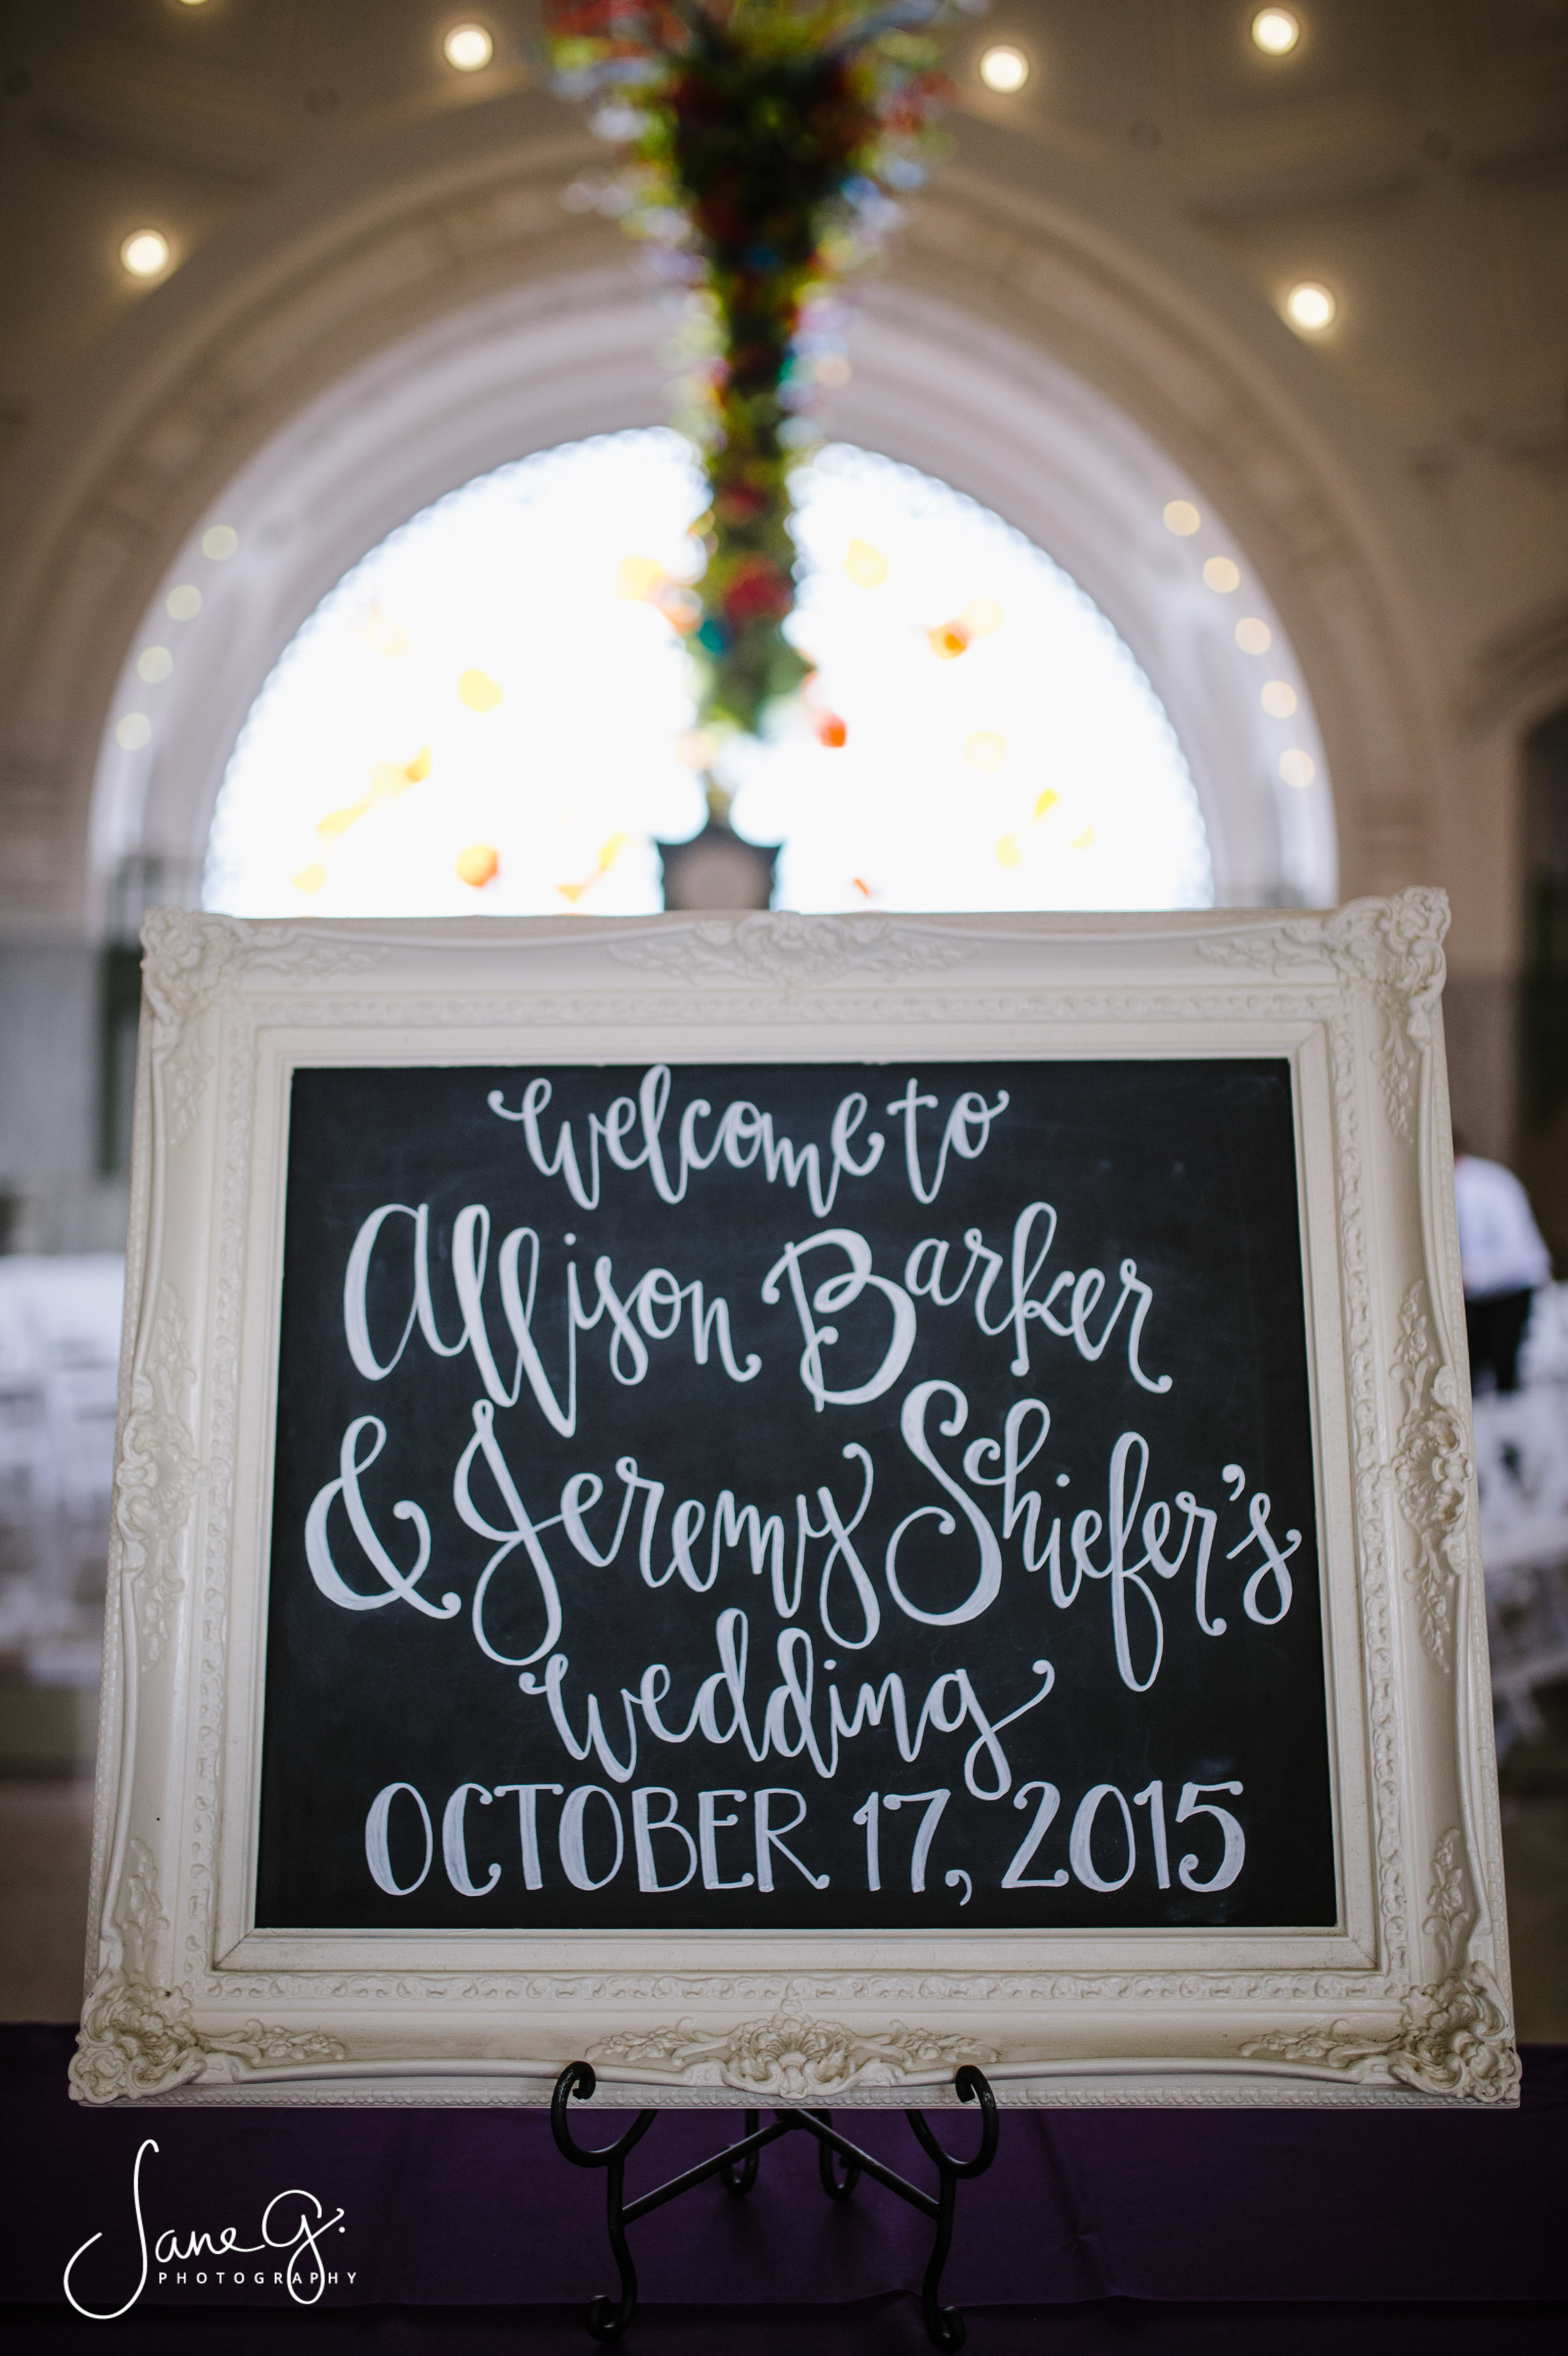 AllisonandJeremyWed_JaneGPhoto-404.jpg